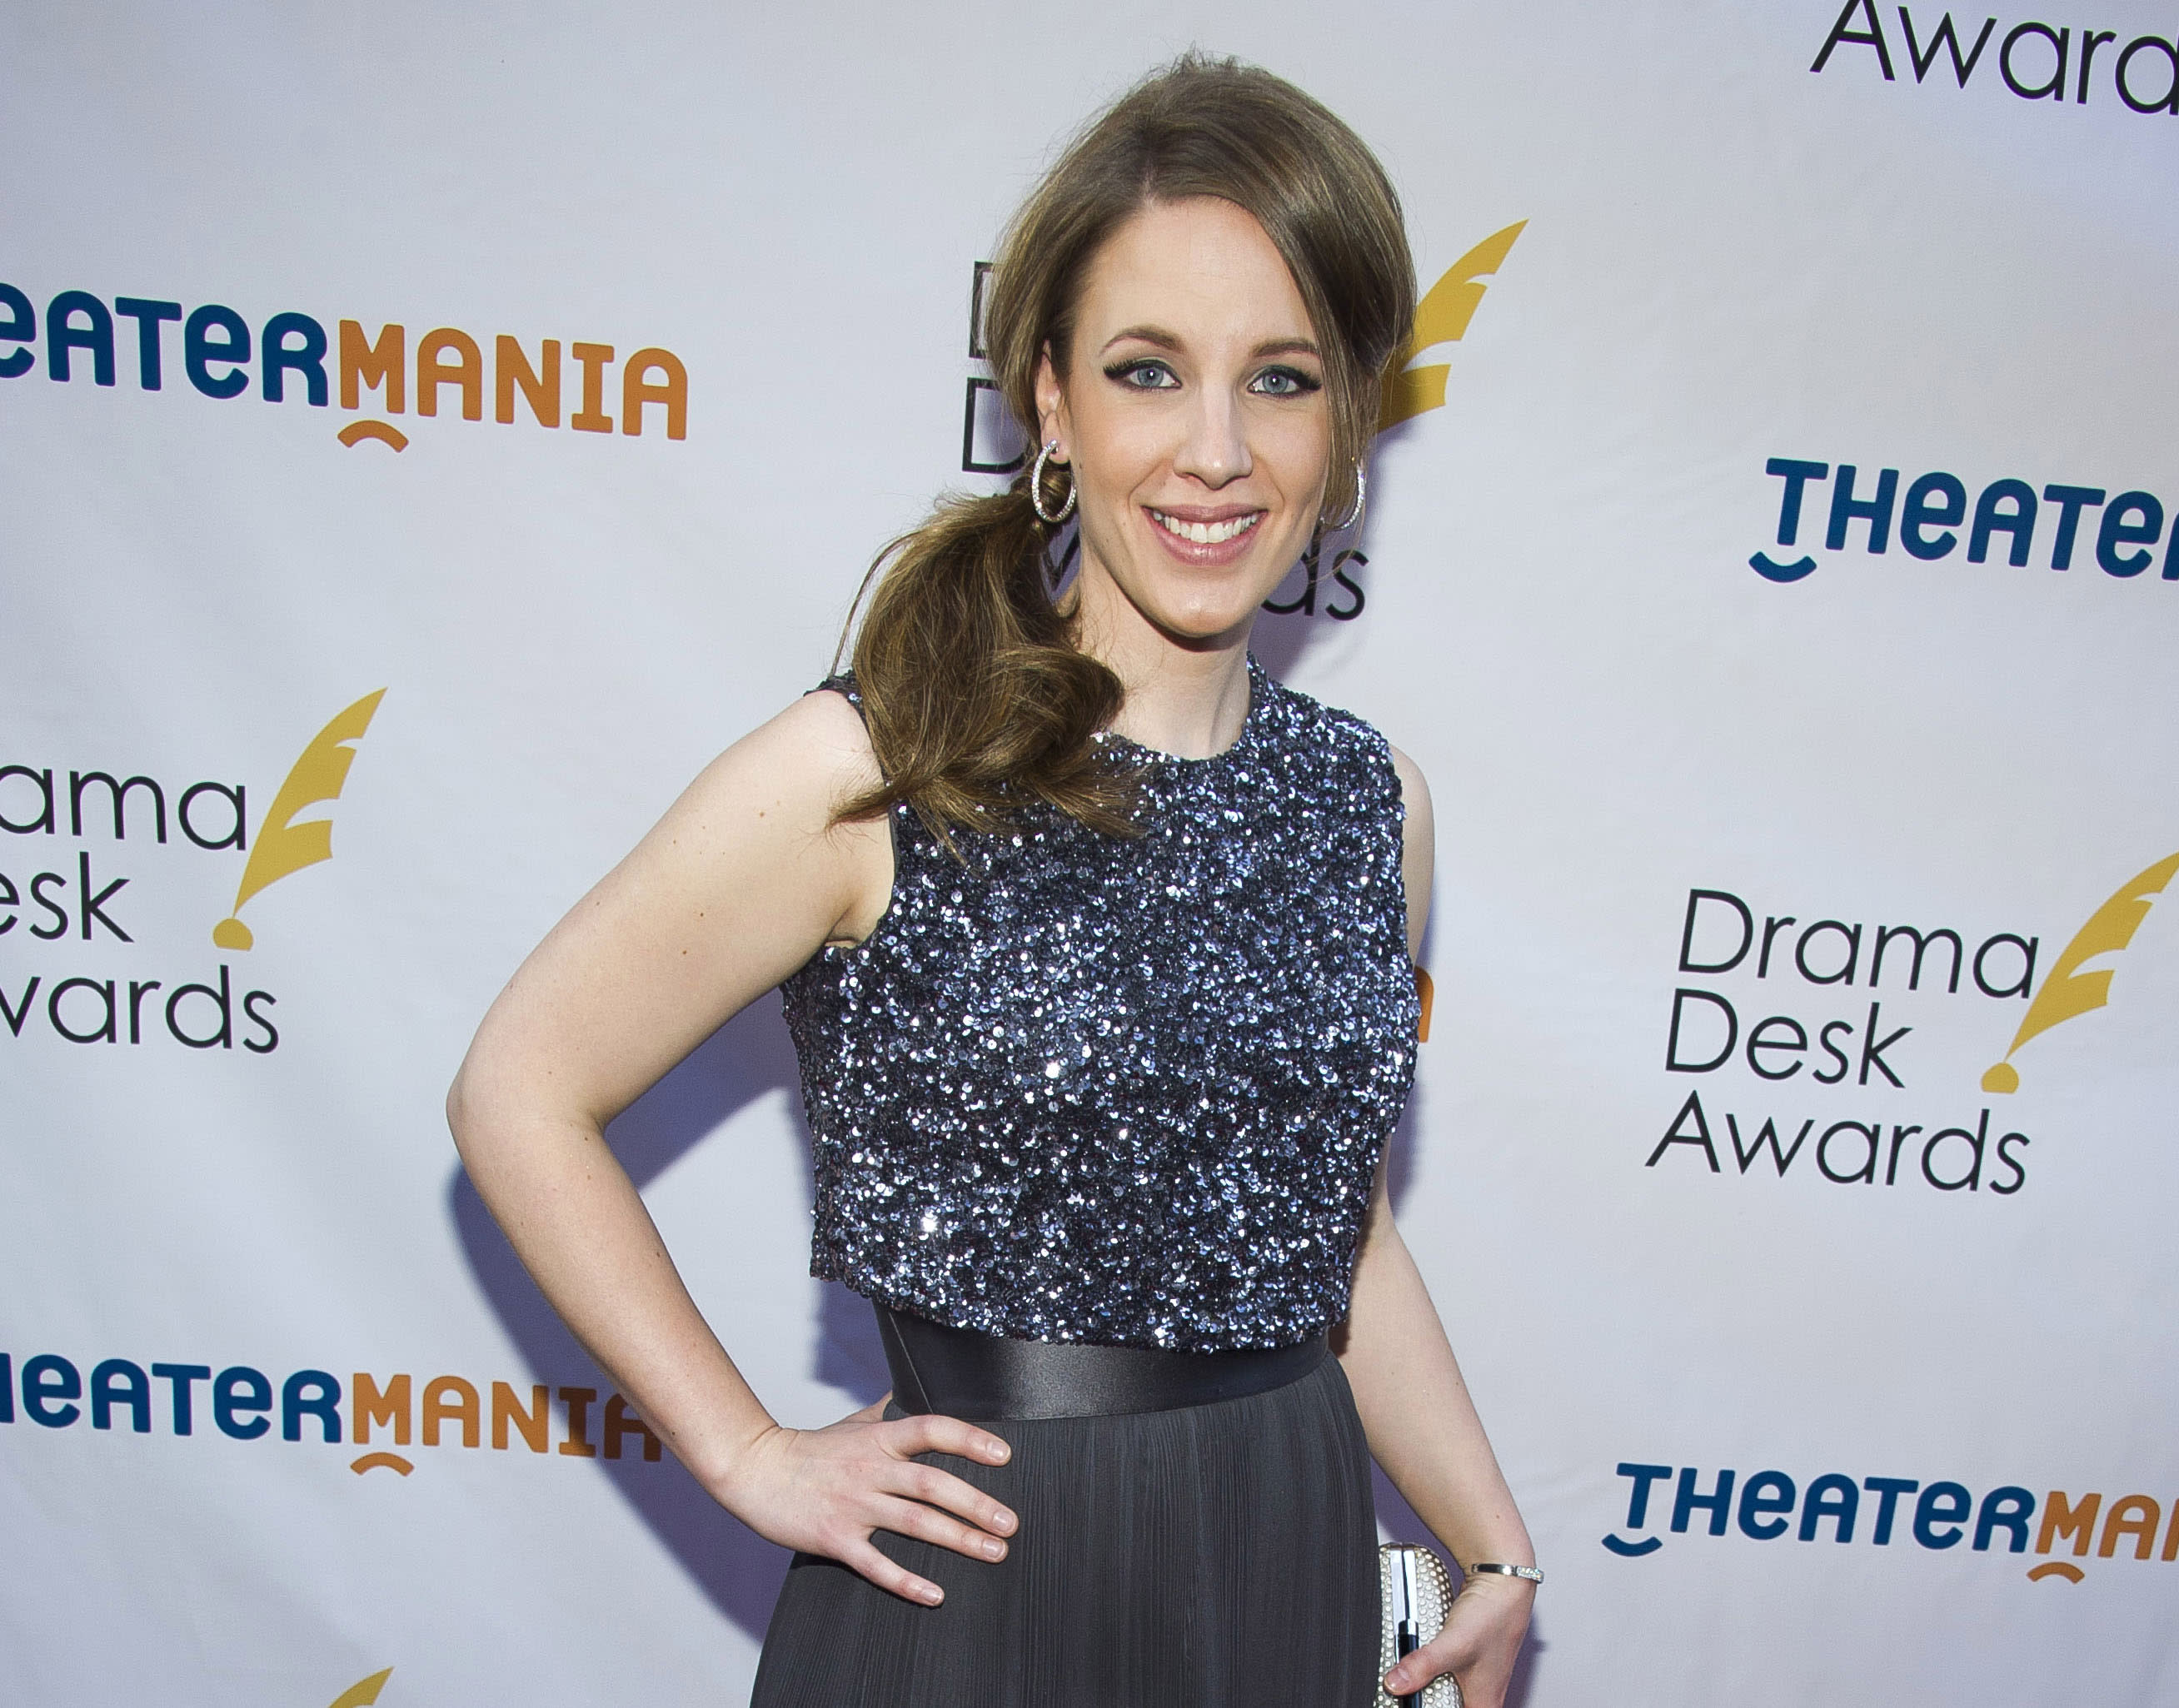 Musical 'Waitress' to star Jessie Mueller on Broadway